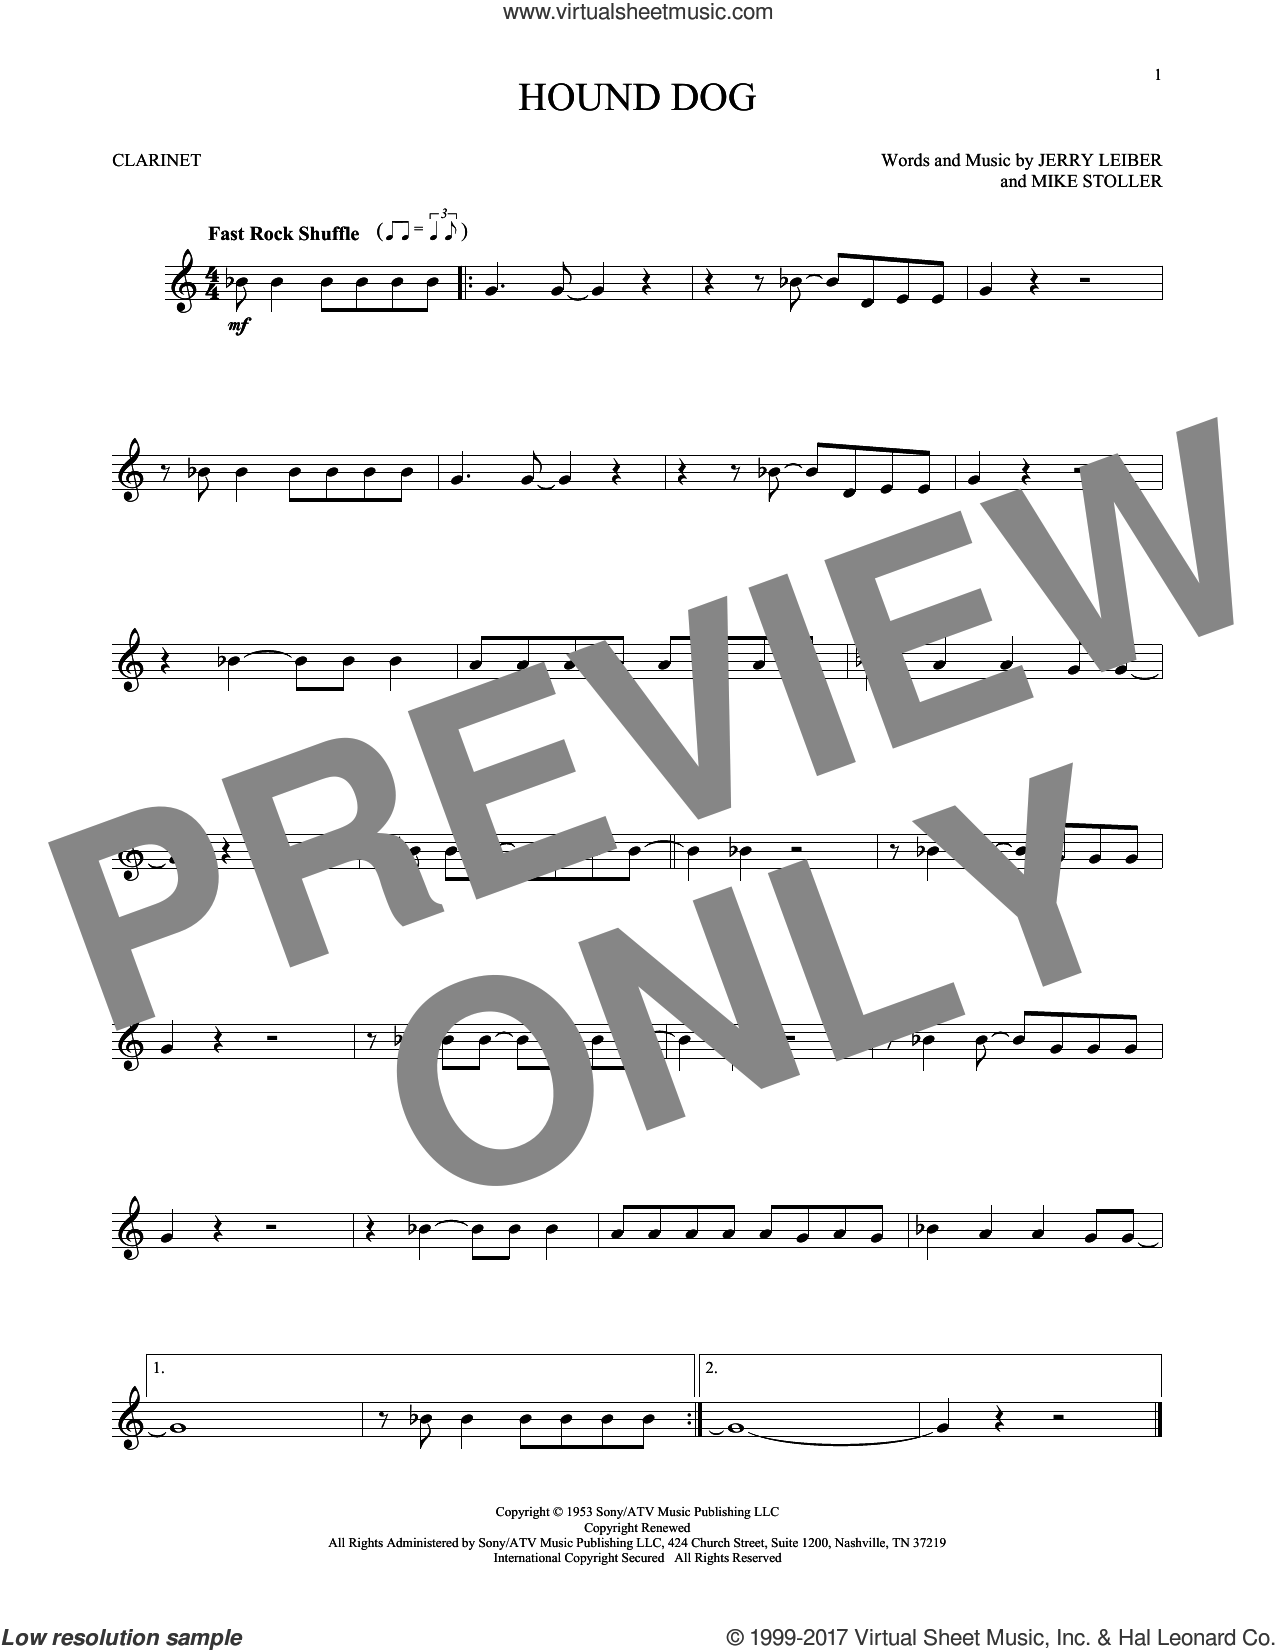 Hound Dog sheet music for clarinet solo by Elvis Presley, Jerry Leiber and Mike Stoller, intermediate skill level